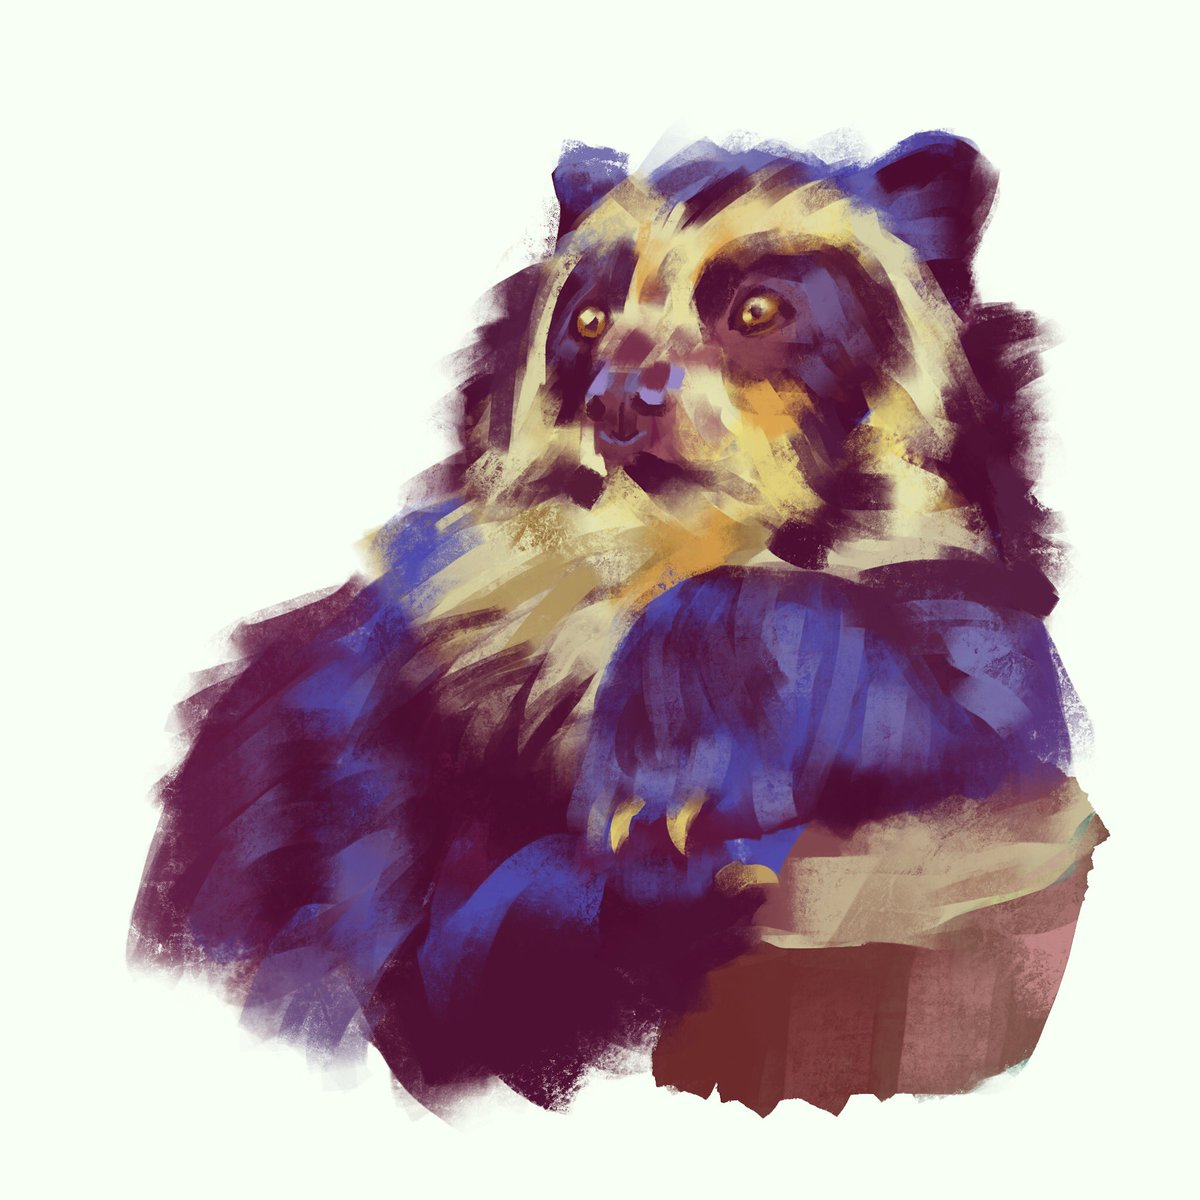 @Strange_Animals I love this bear so much I did his portrait, desperately handsome guy https://t.co/qlIxBsWkb4